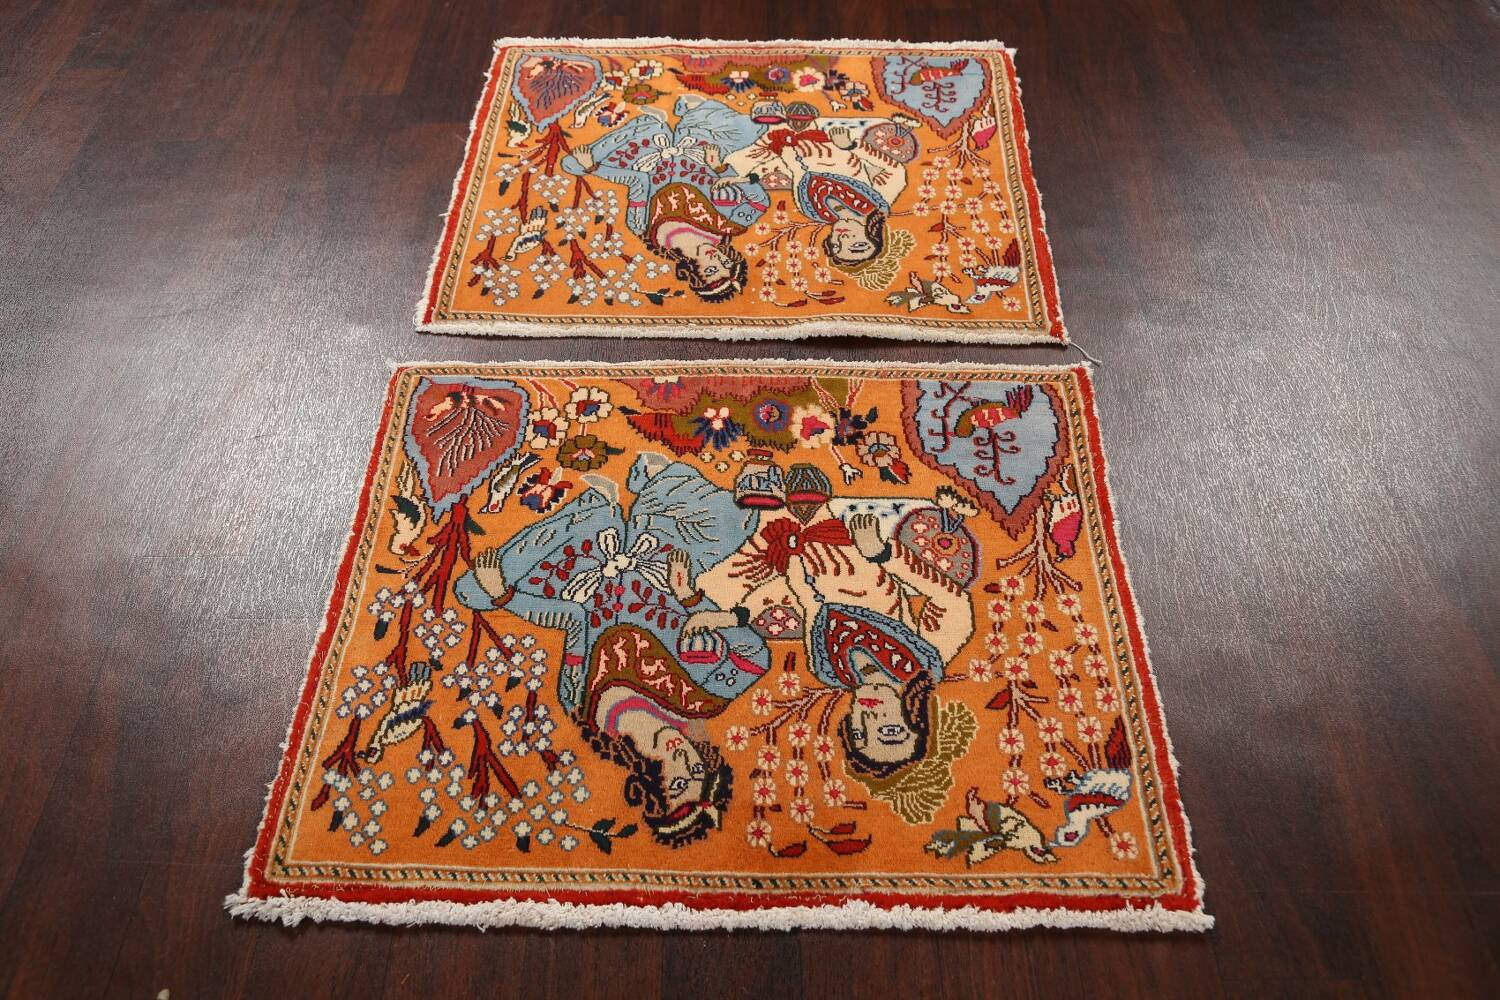 Pictorial Set of 2 Shiraz Persian Area Rugs 2x3 image 13